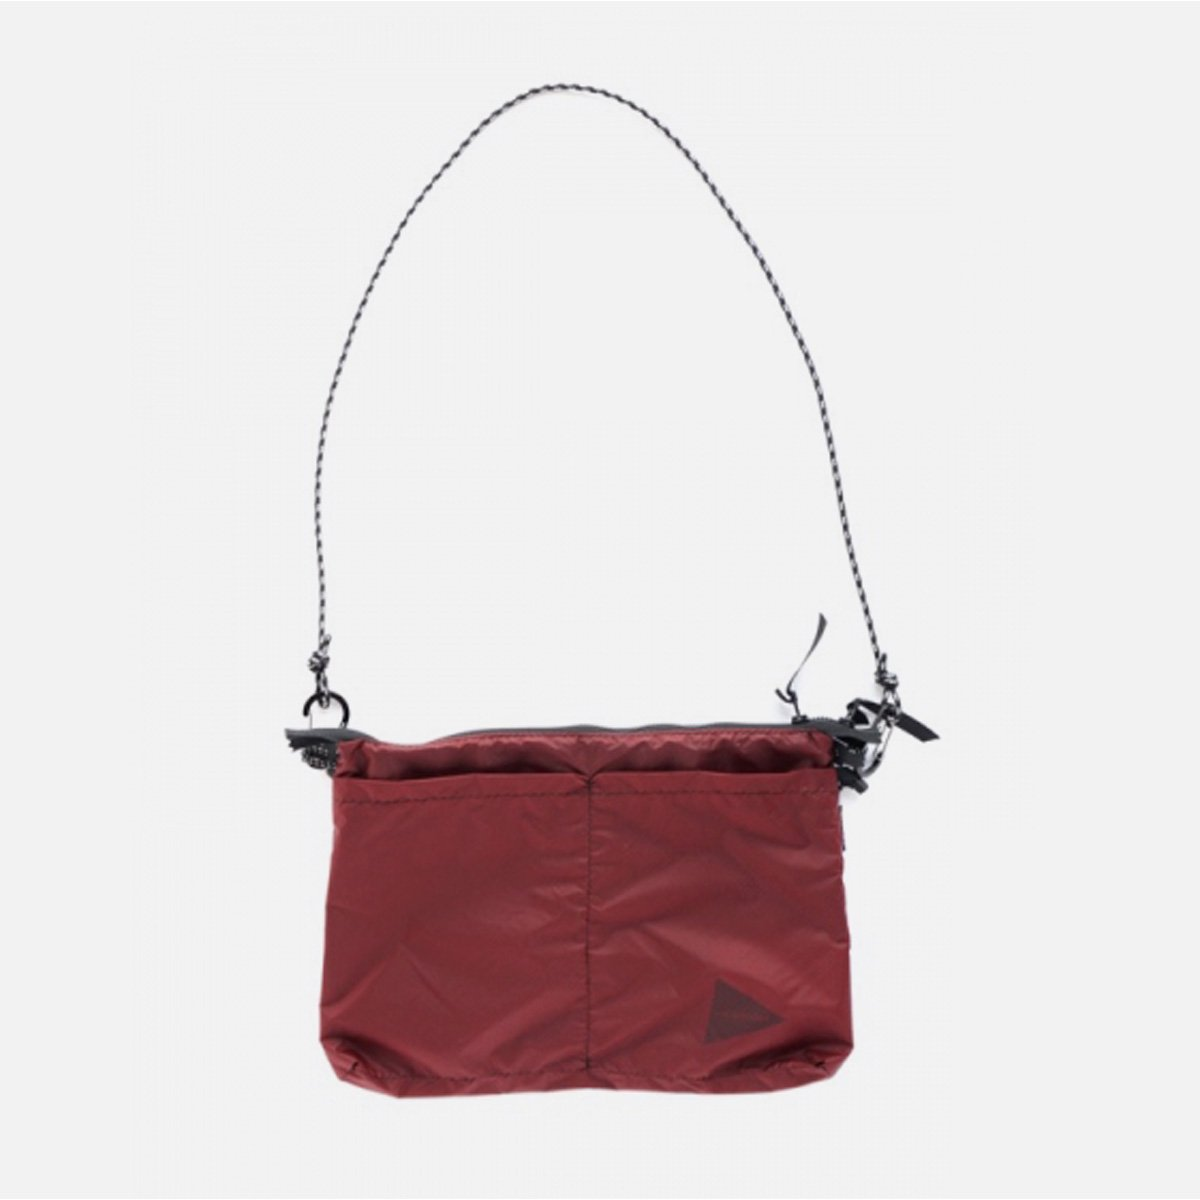 and wander sil sacoche (beige)(red)(black)2